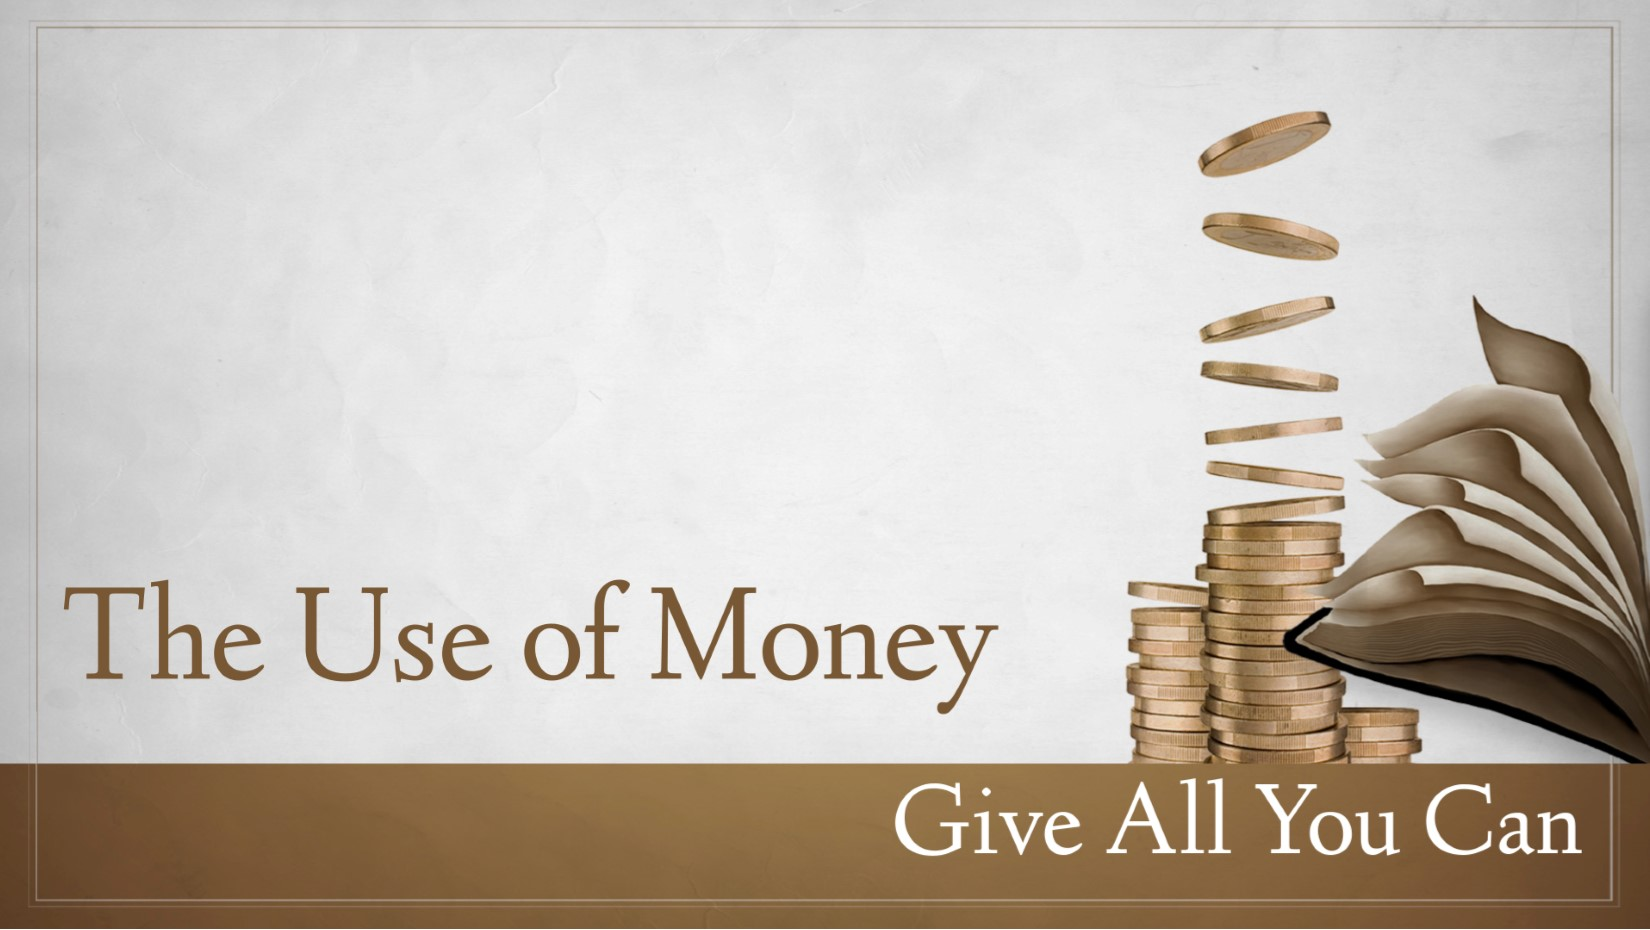 11.15.2020 The Use of Money Give All You Can